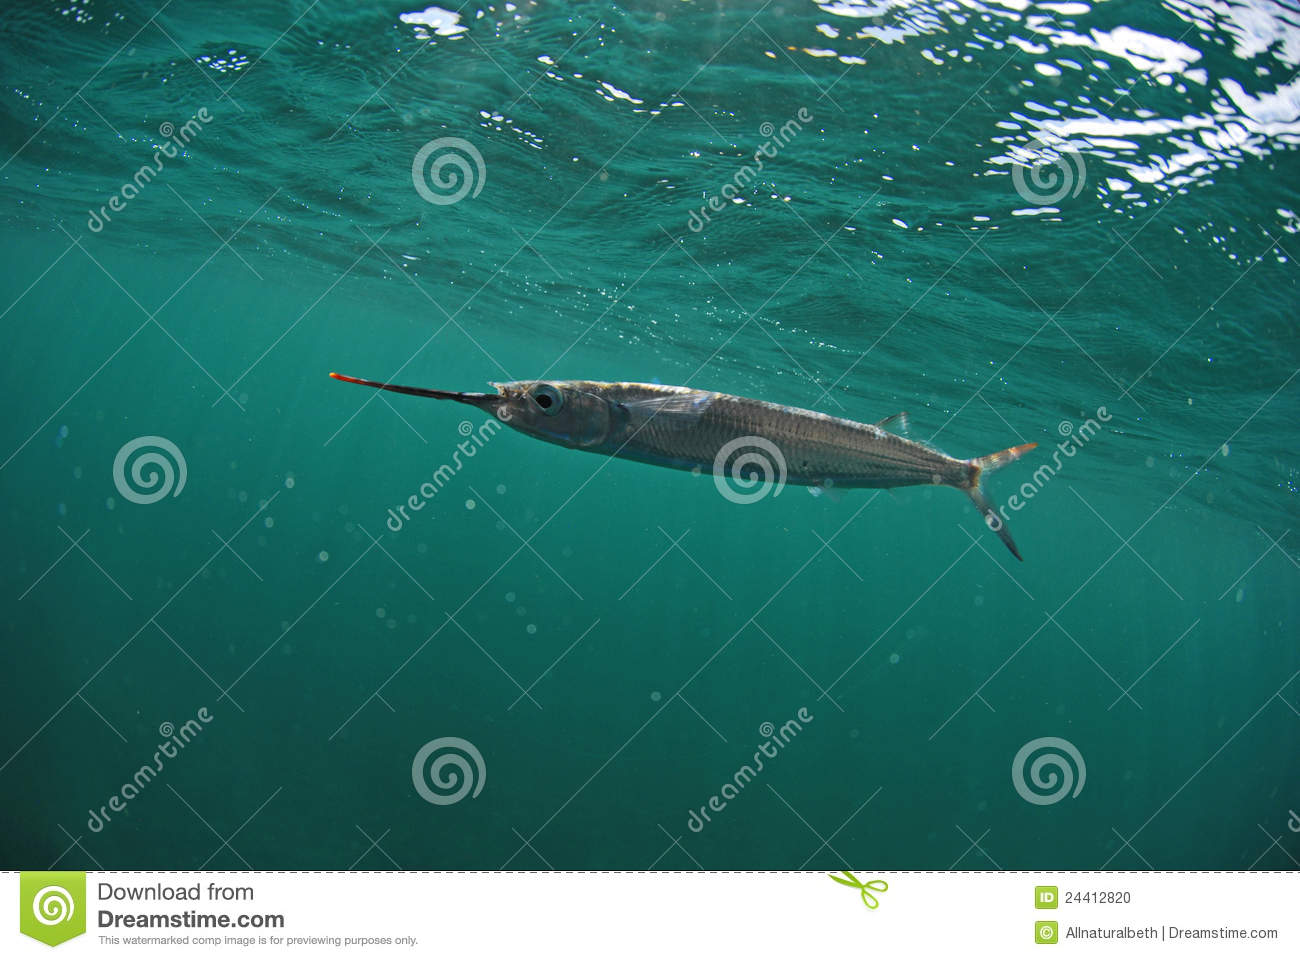 Ballyhoo fish swimming in ocean stock photo image 24412820 for Dream of fish swimming